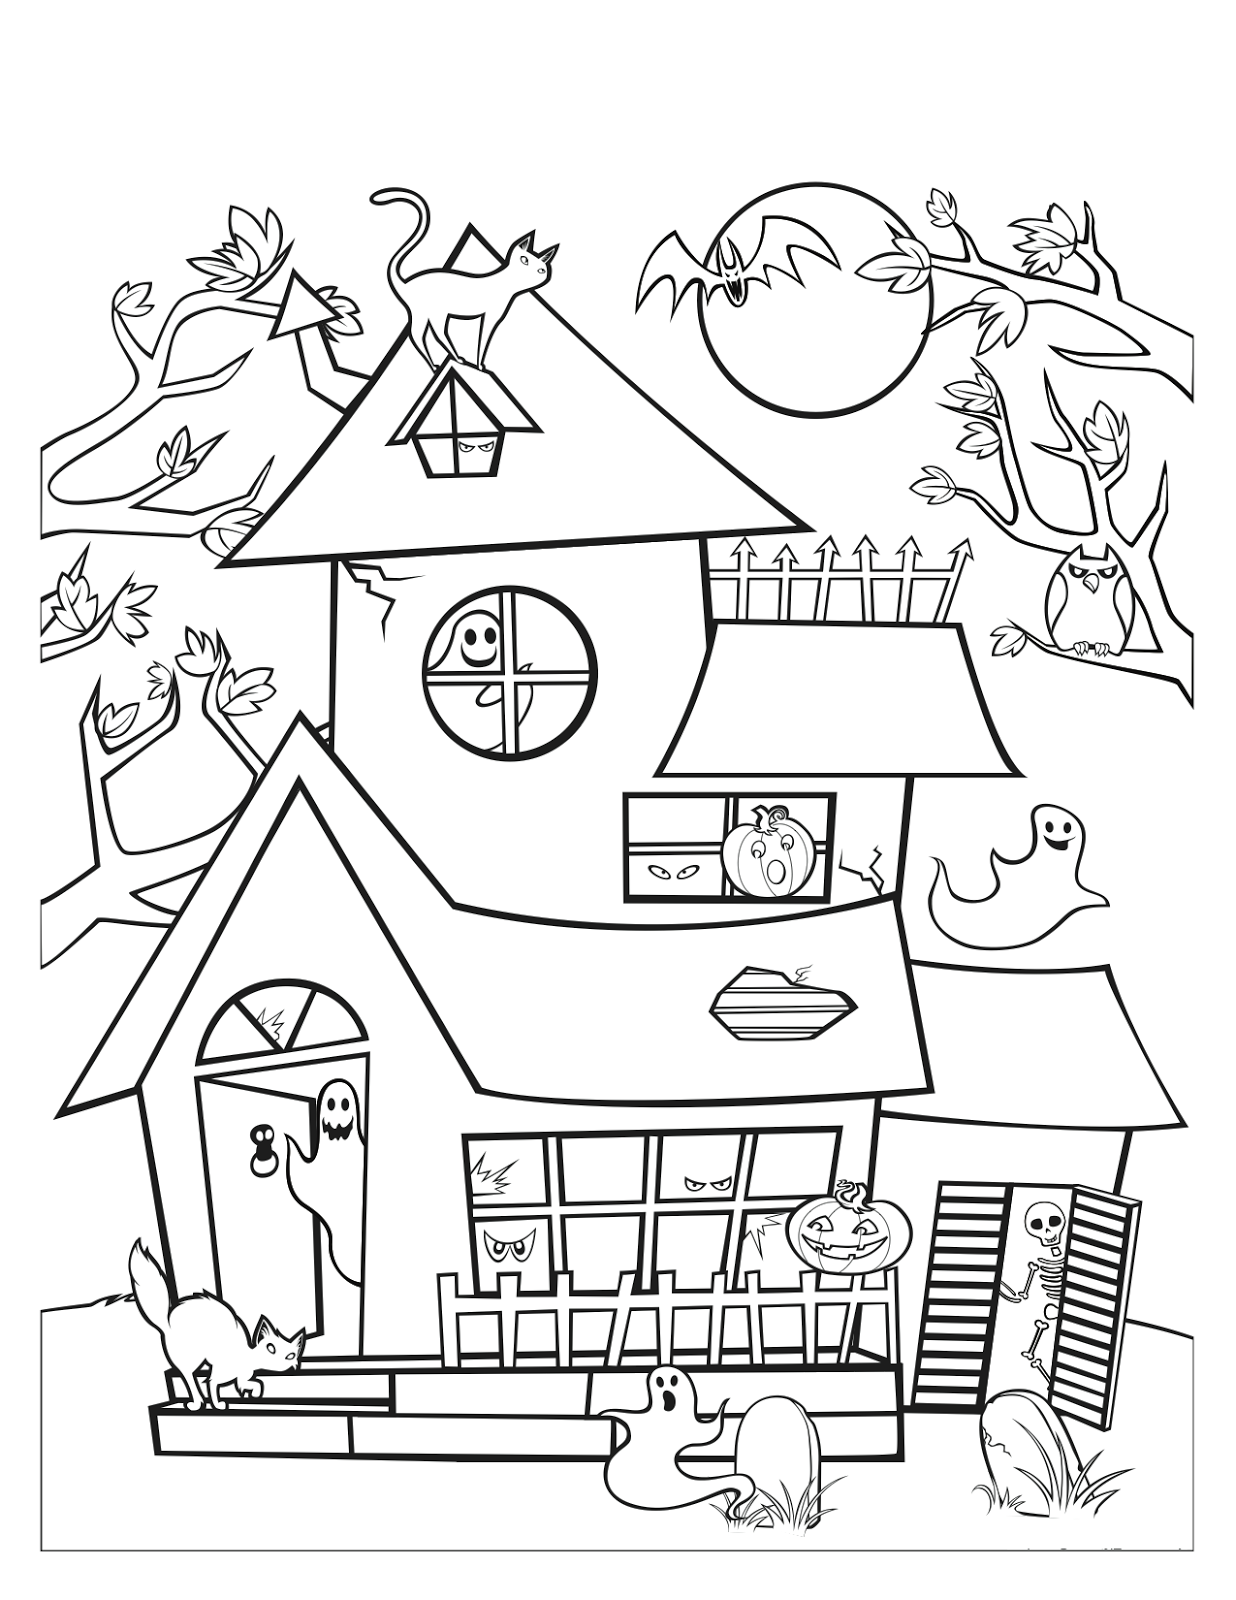 Free Coloring Pages Of Tgv Haunted House Coloring Pages To Print